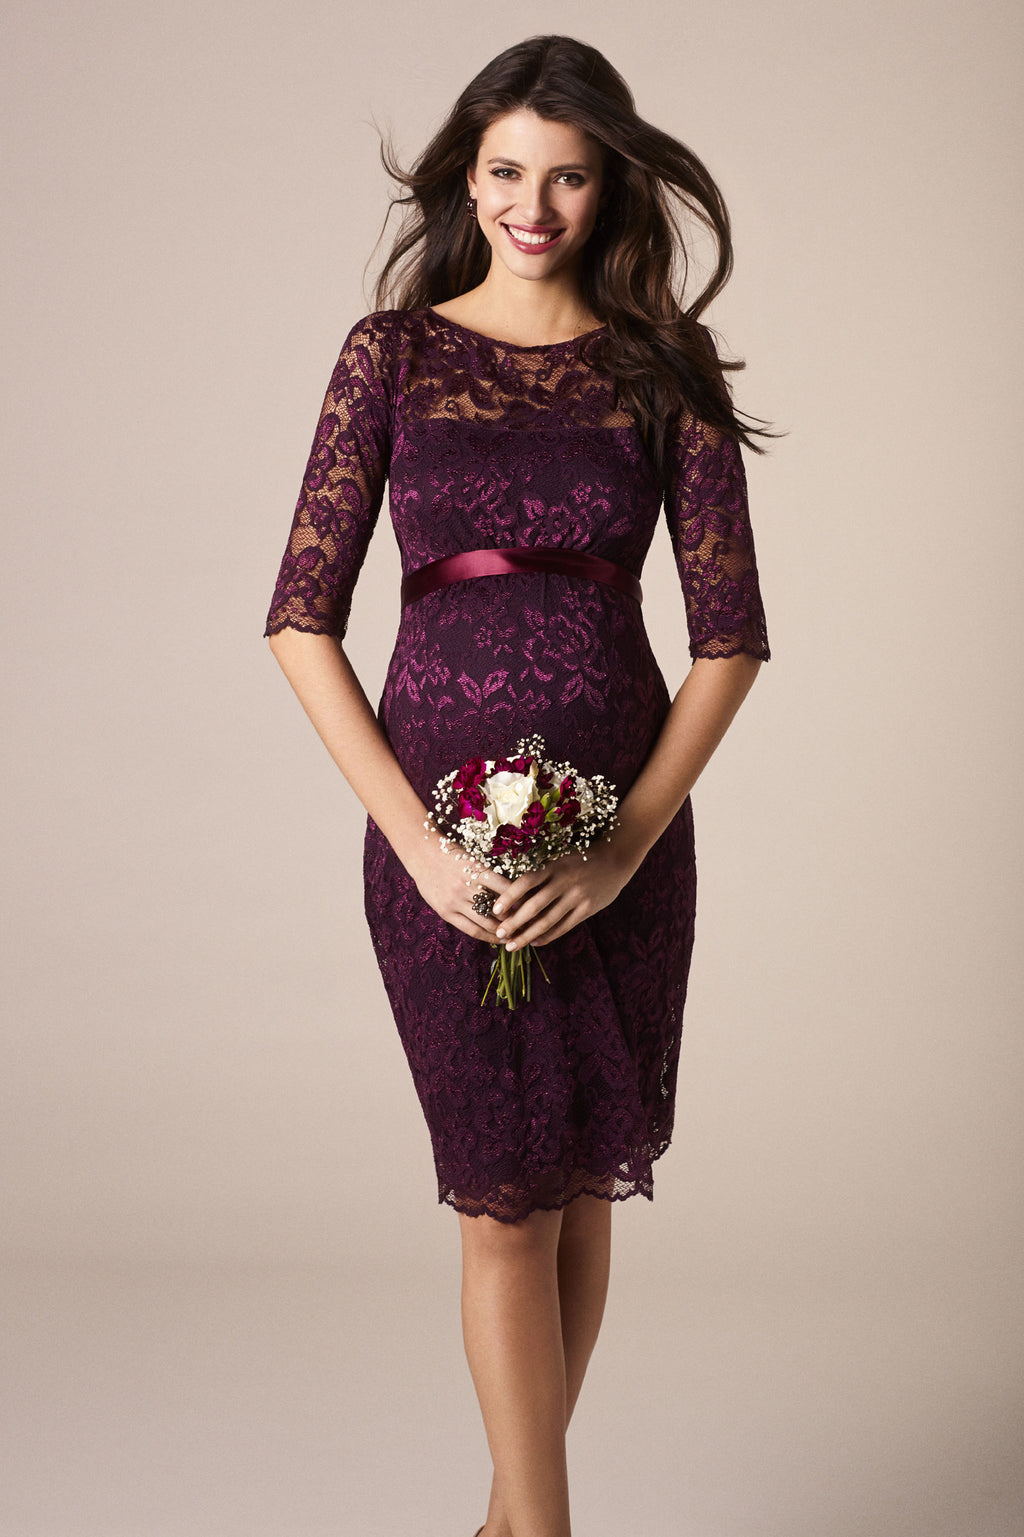 Tiffany Rose Amelia Maternity Lace Dress in Claret - Seven Women Maternity